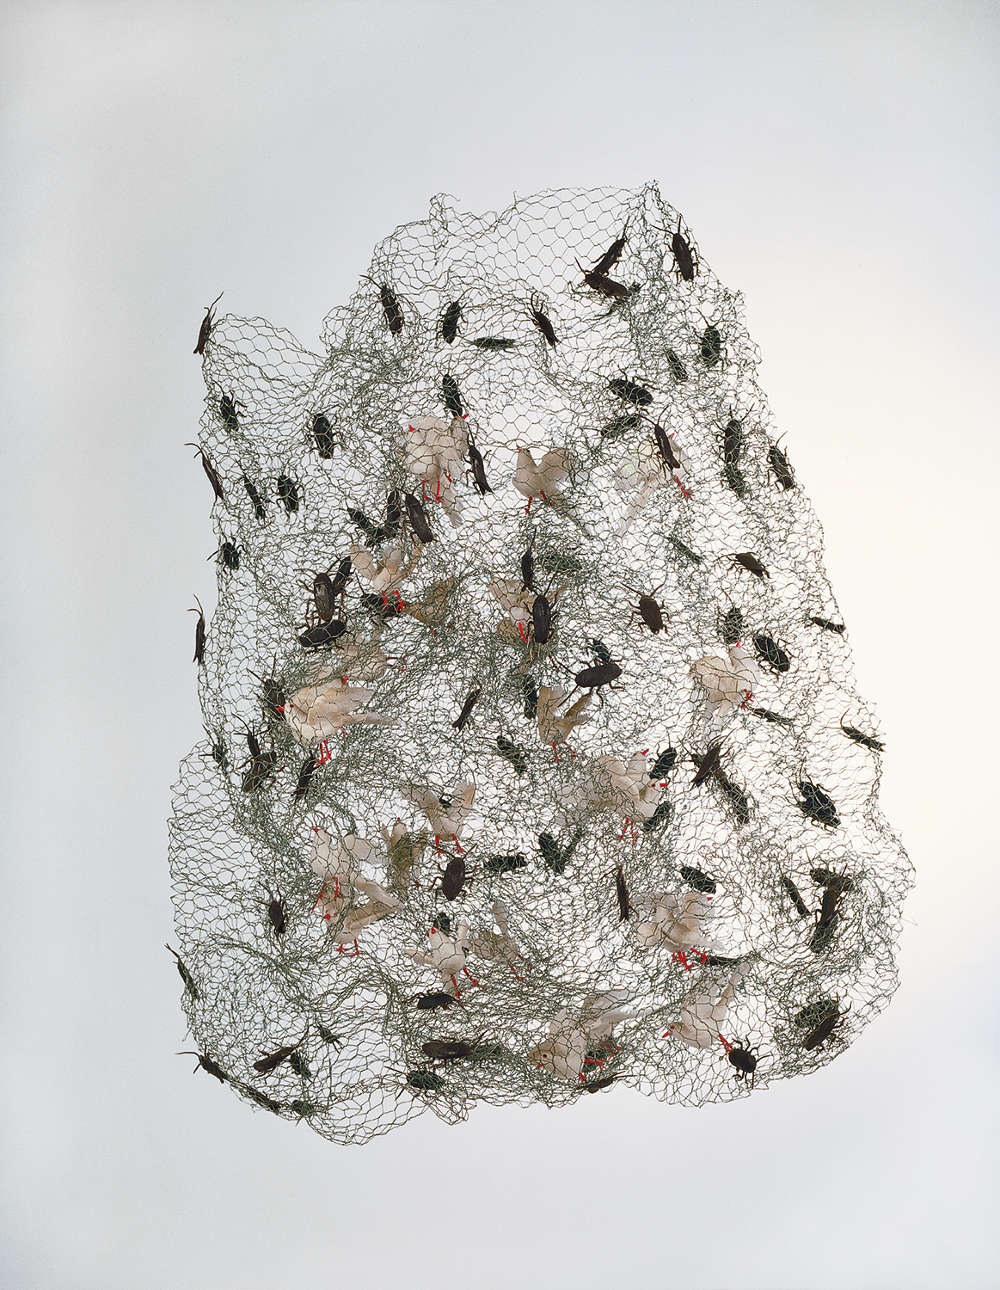 Leon Ferrari, Pigeons and cockroaches, 2003. Hanging sculpture 80 x 60 x 57 cm